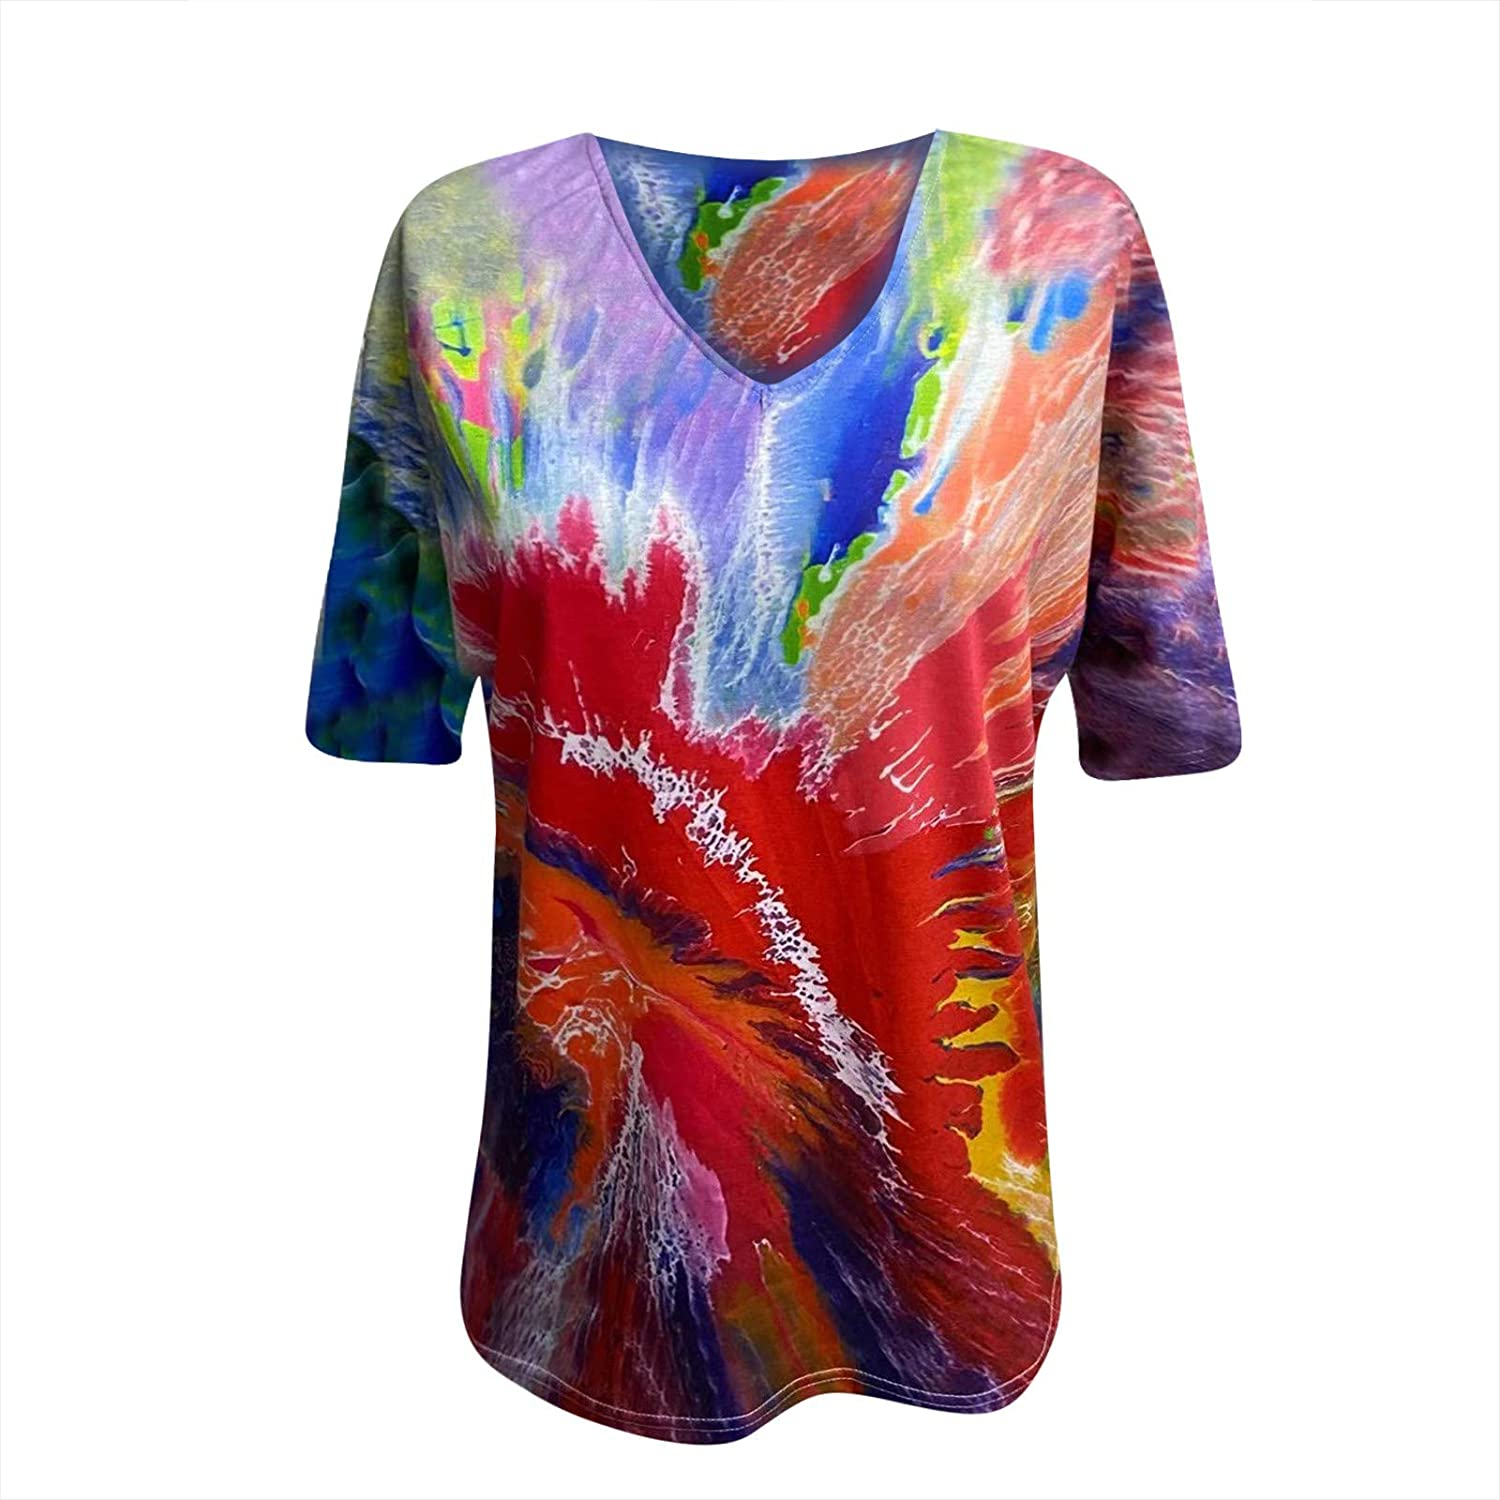 Summer Tops for Women 2021,Women's V Neck Summer Causal Short Sleeve Tops Loose Soft Floral Printed Tshirts Tunic Blouse Tops Tee Shirts Red